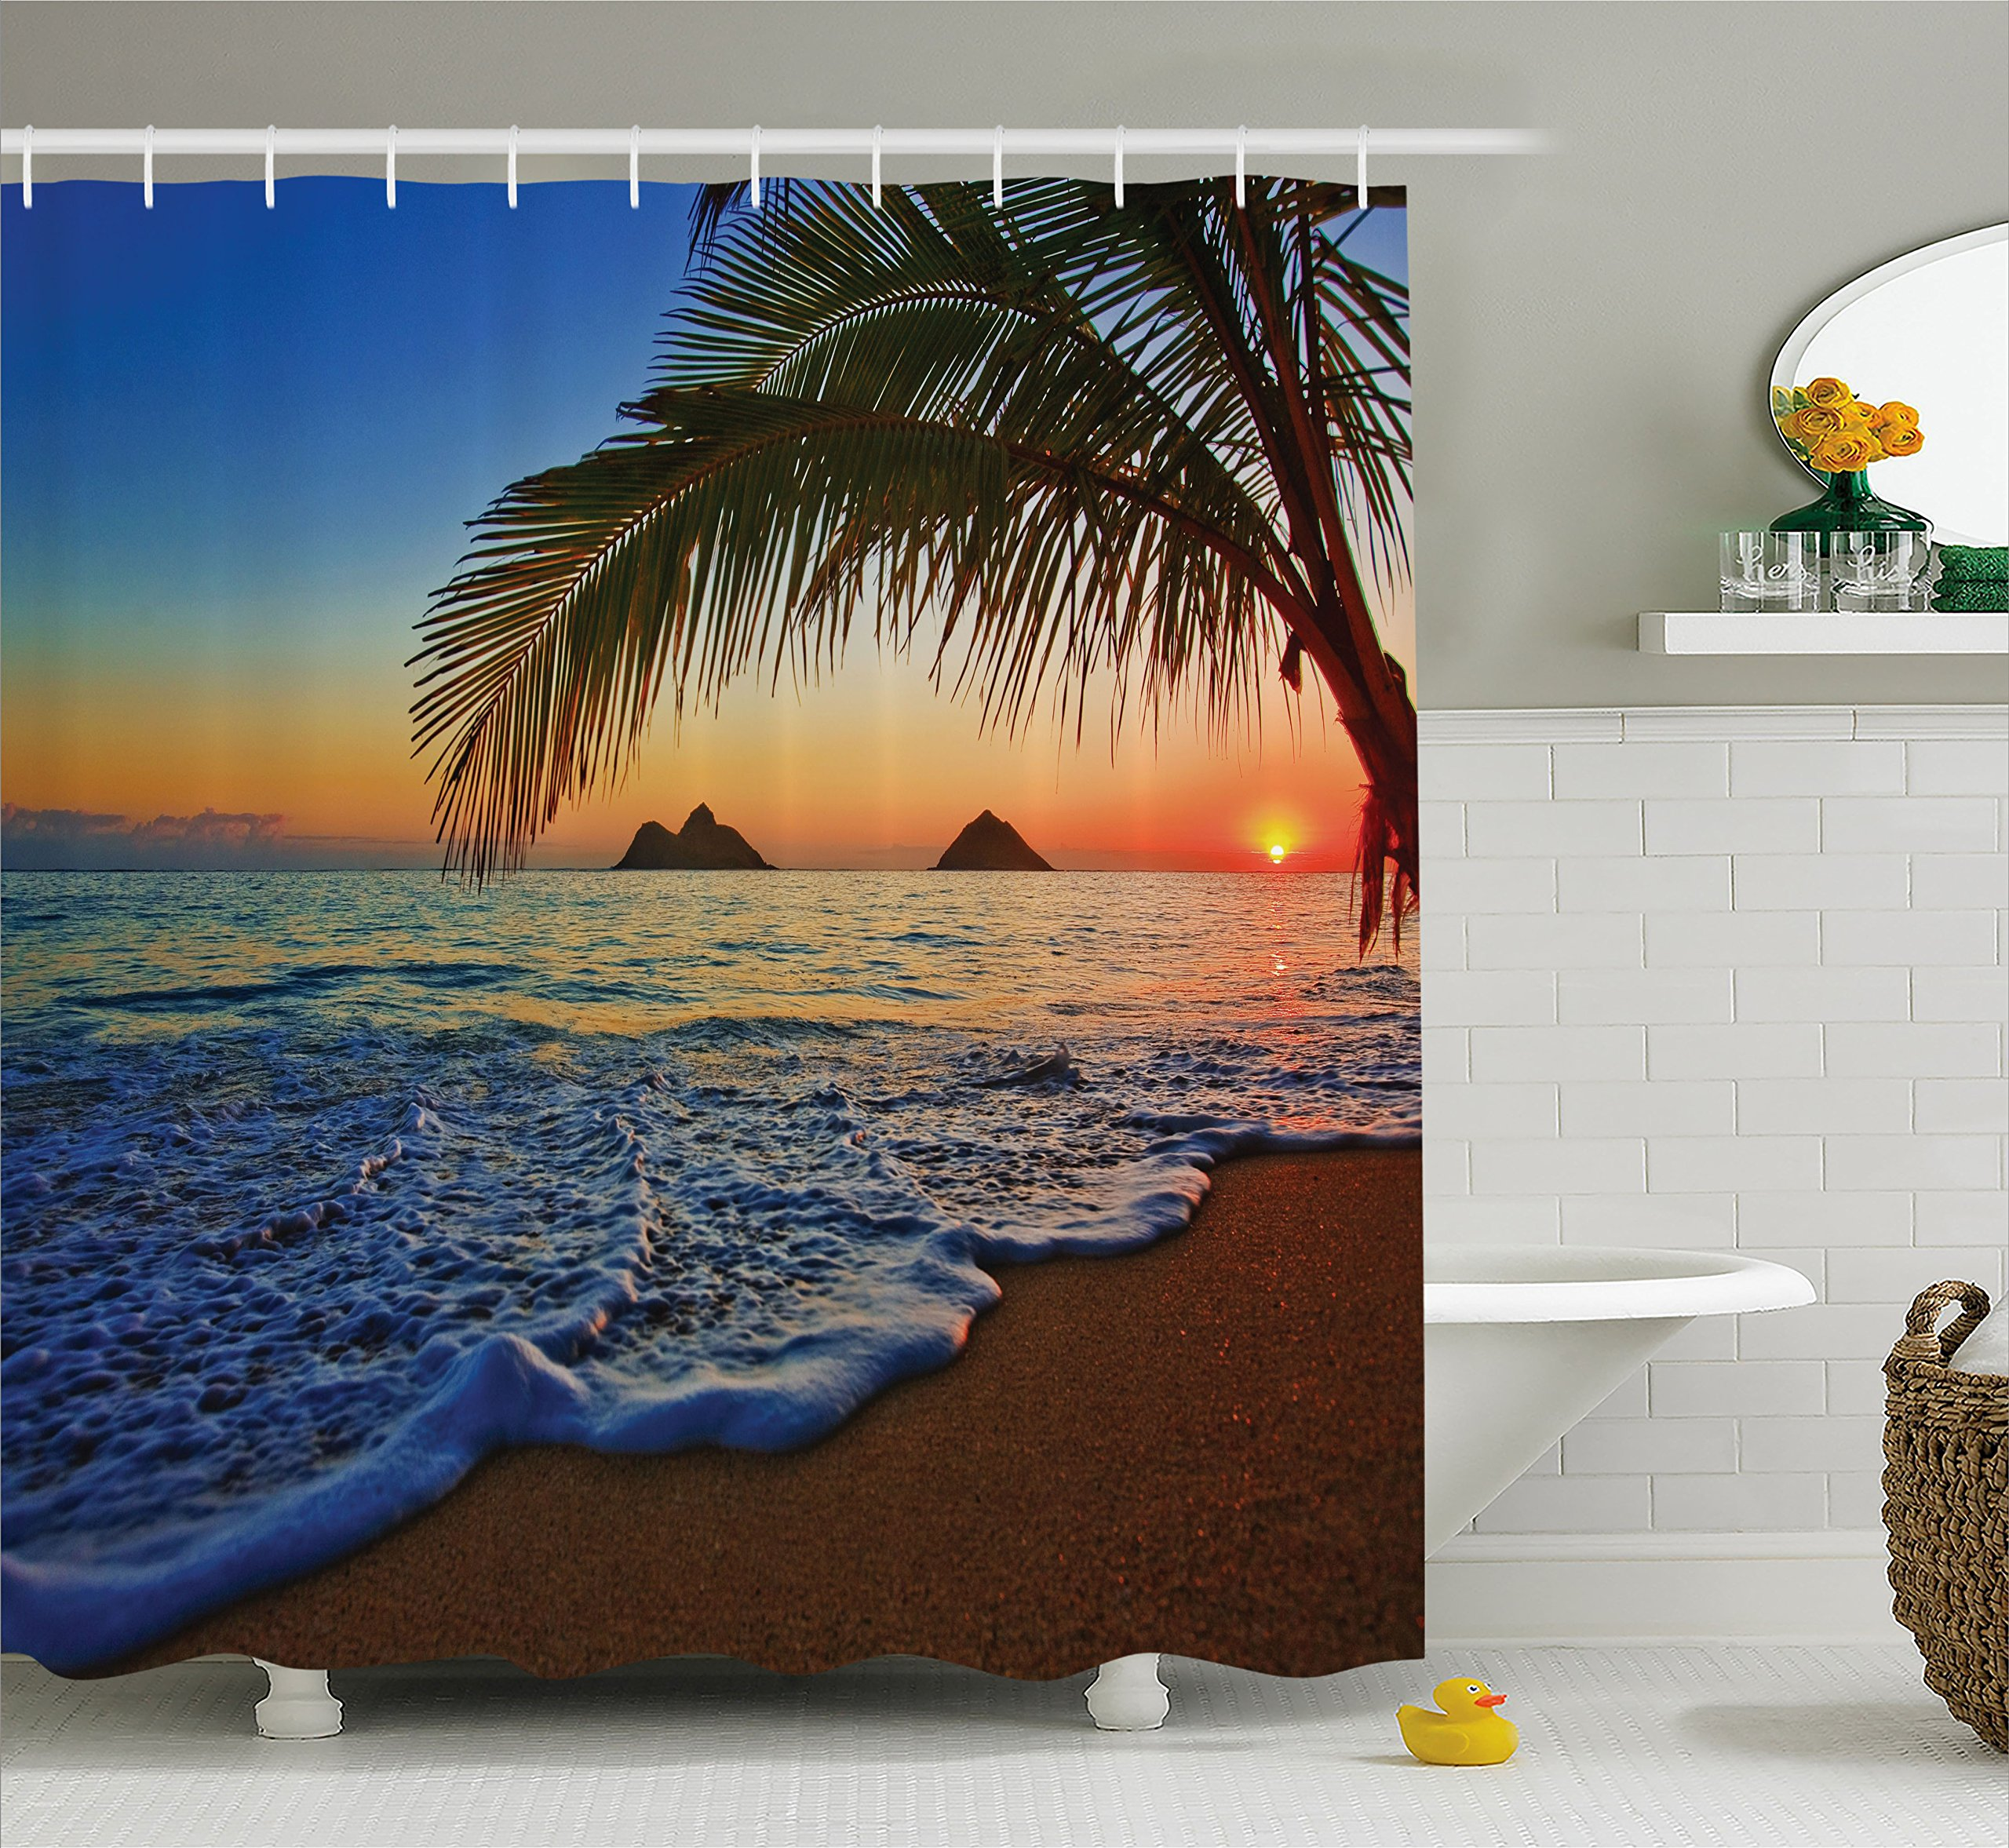 Ambesonne Hawaiian Decor Shower Curtain by, Pacific Sunrise at Lanikai Beach Hawaii Colorful Sky Wavy Ocean Surface Scenery, Polyester Fabric Bathroom Decor Set with Hooks, Blue Ivory